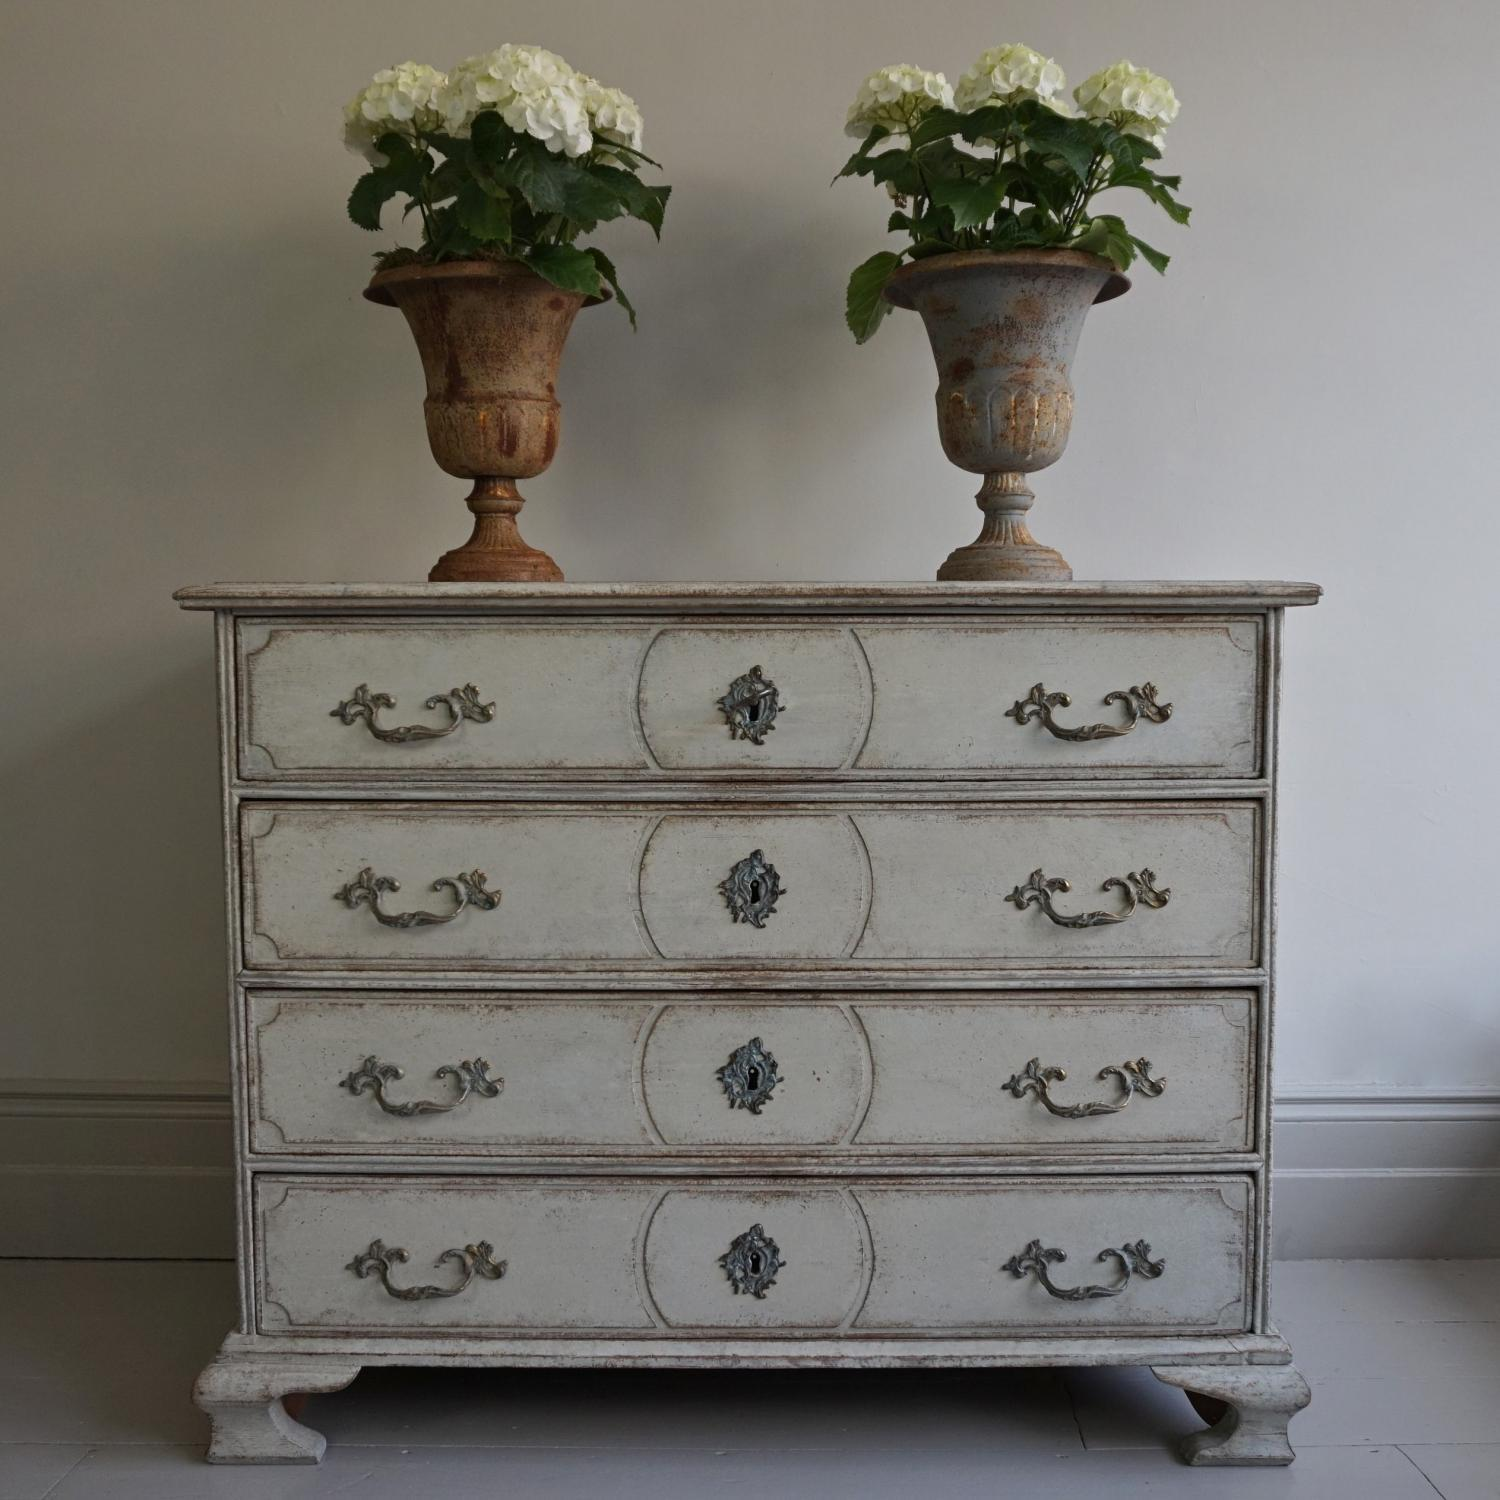 VERY FINE SWEDISH BAROQUE CHEST OF DRAWERS